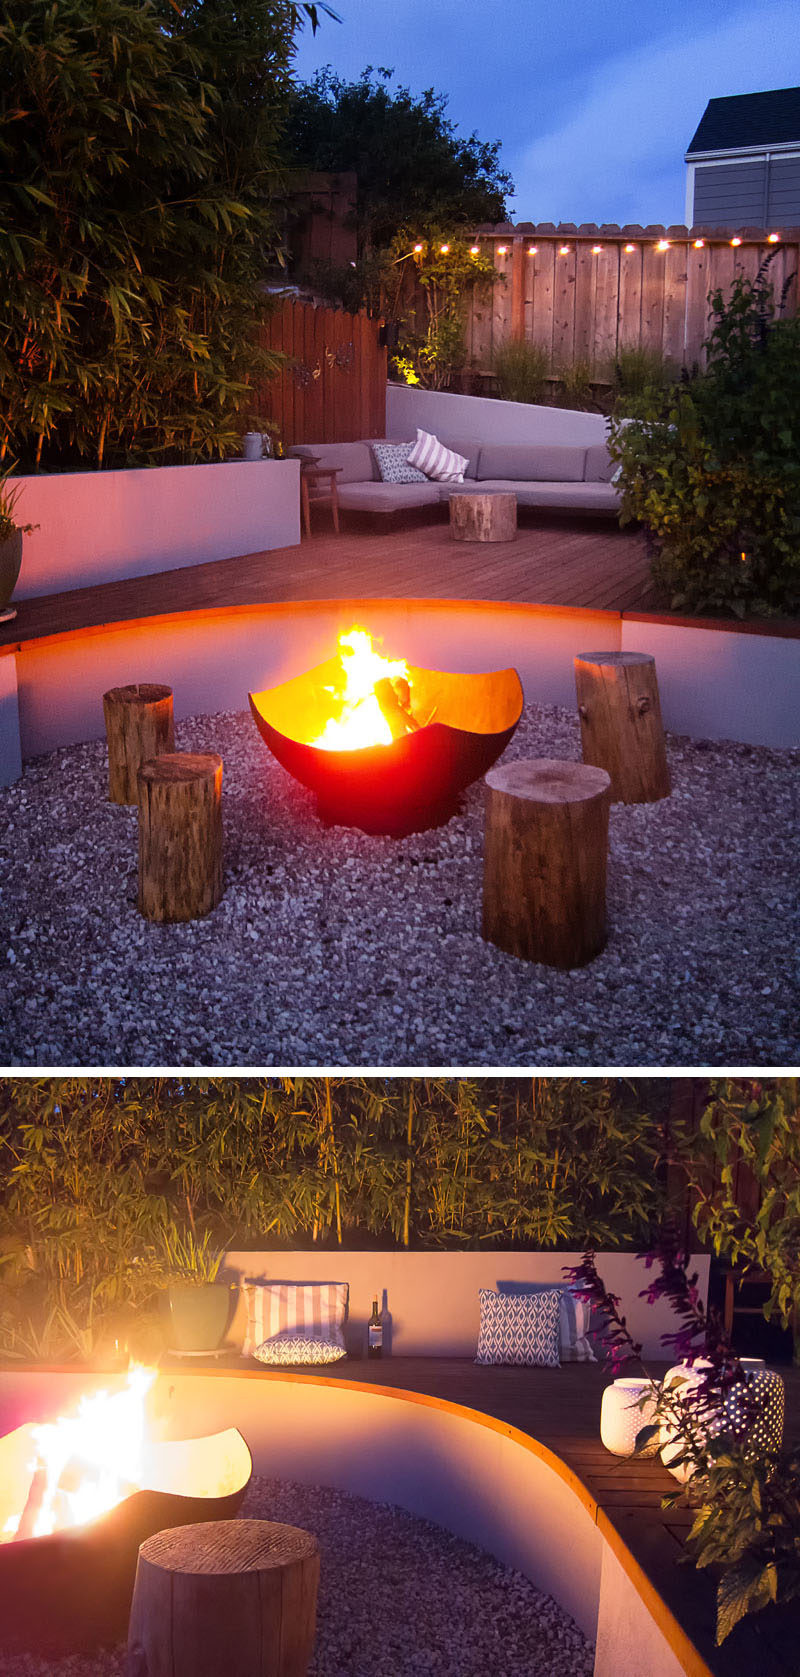 The main focal point of this modern landscaped backyard is a Corten steel wood burning firepit that's surrounded by wood stools and the curved part of the deck. This curved section also becomes additional seating.